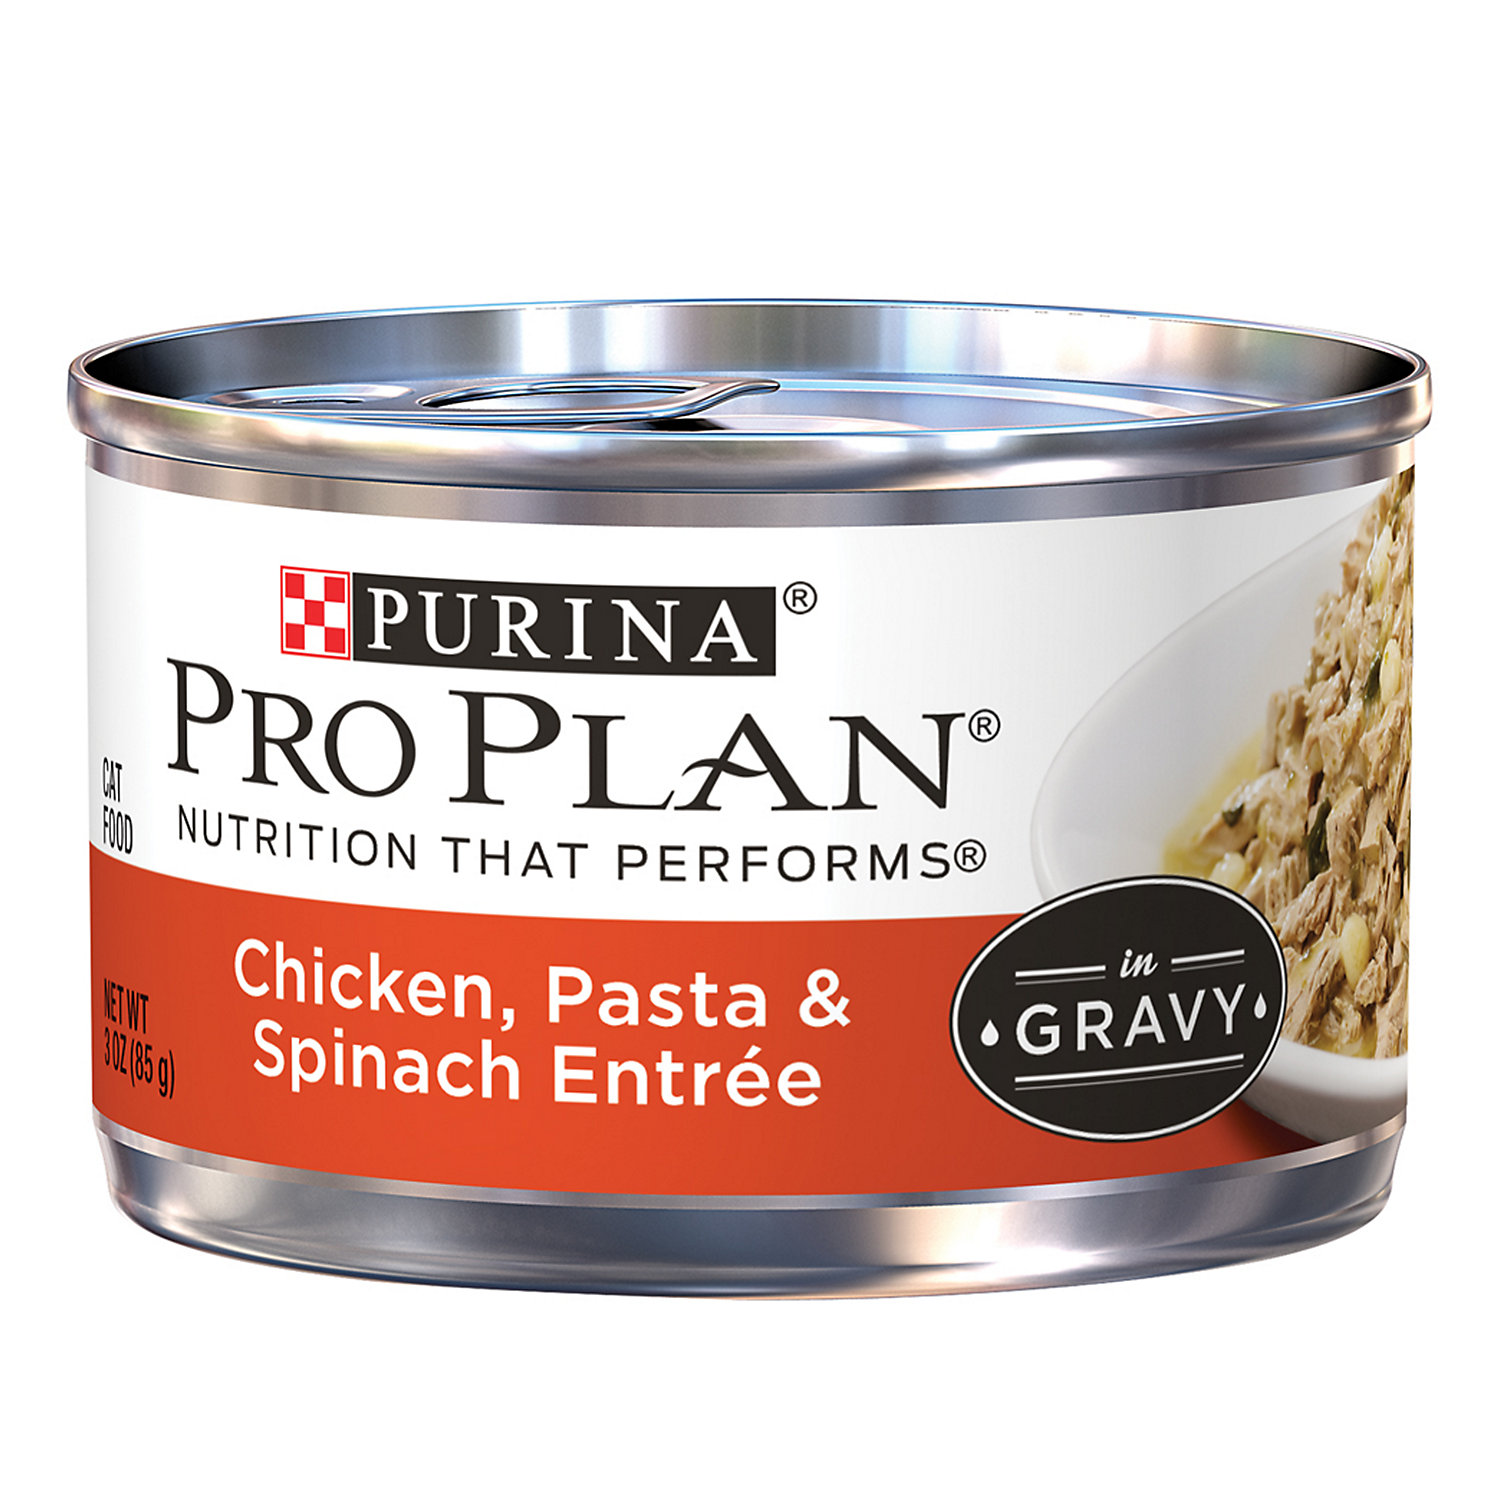 Nestle purina pet care canned upc barcode for Food barcode